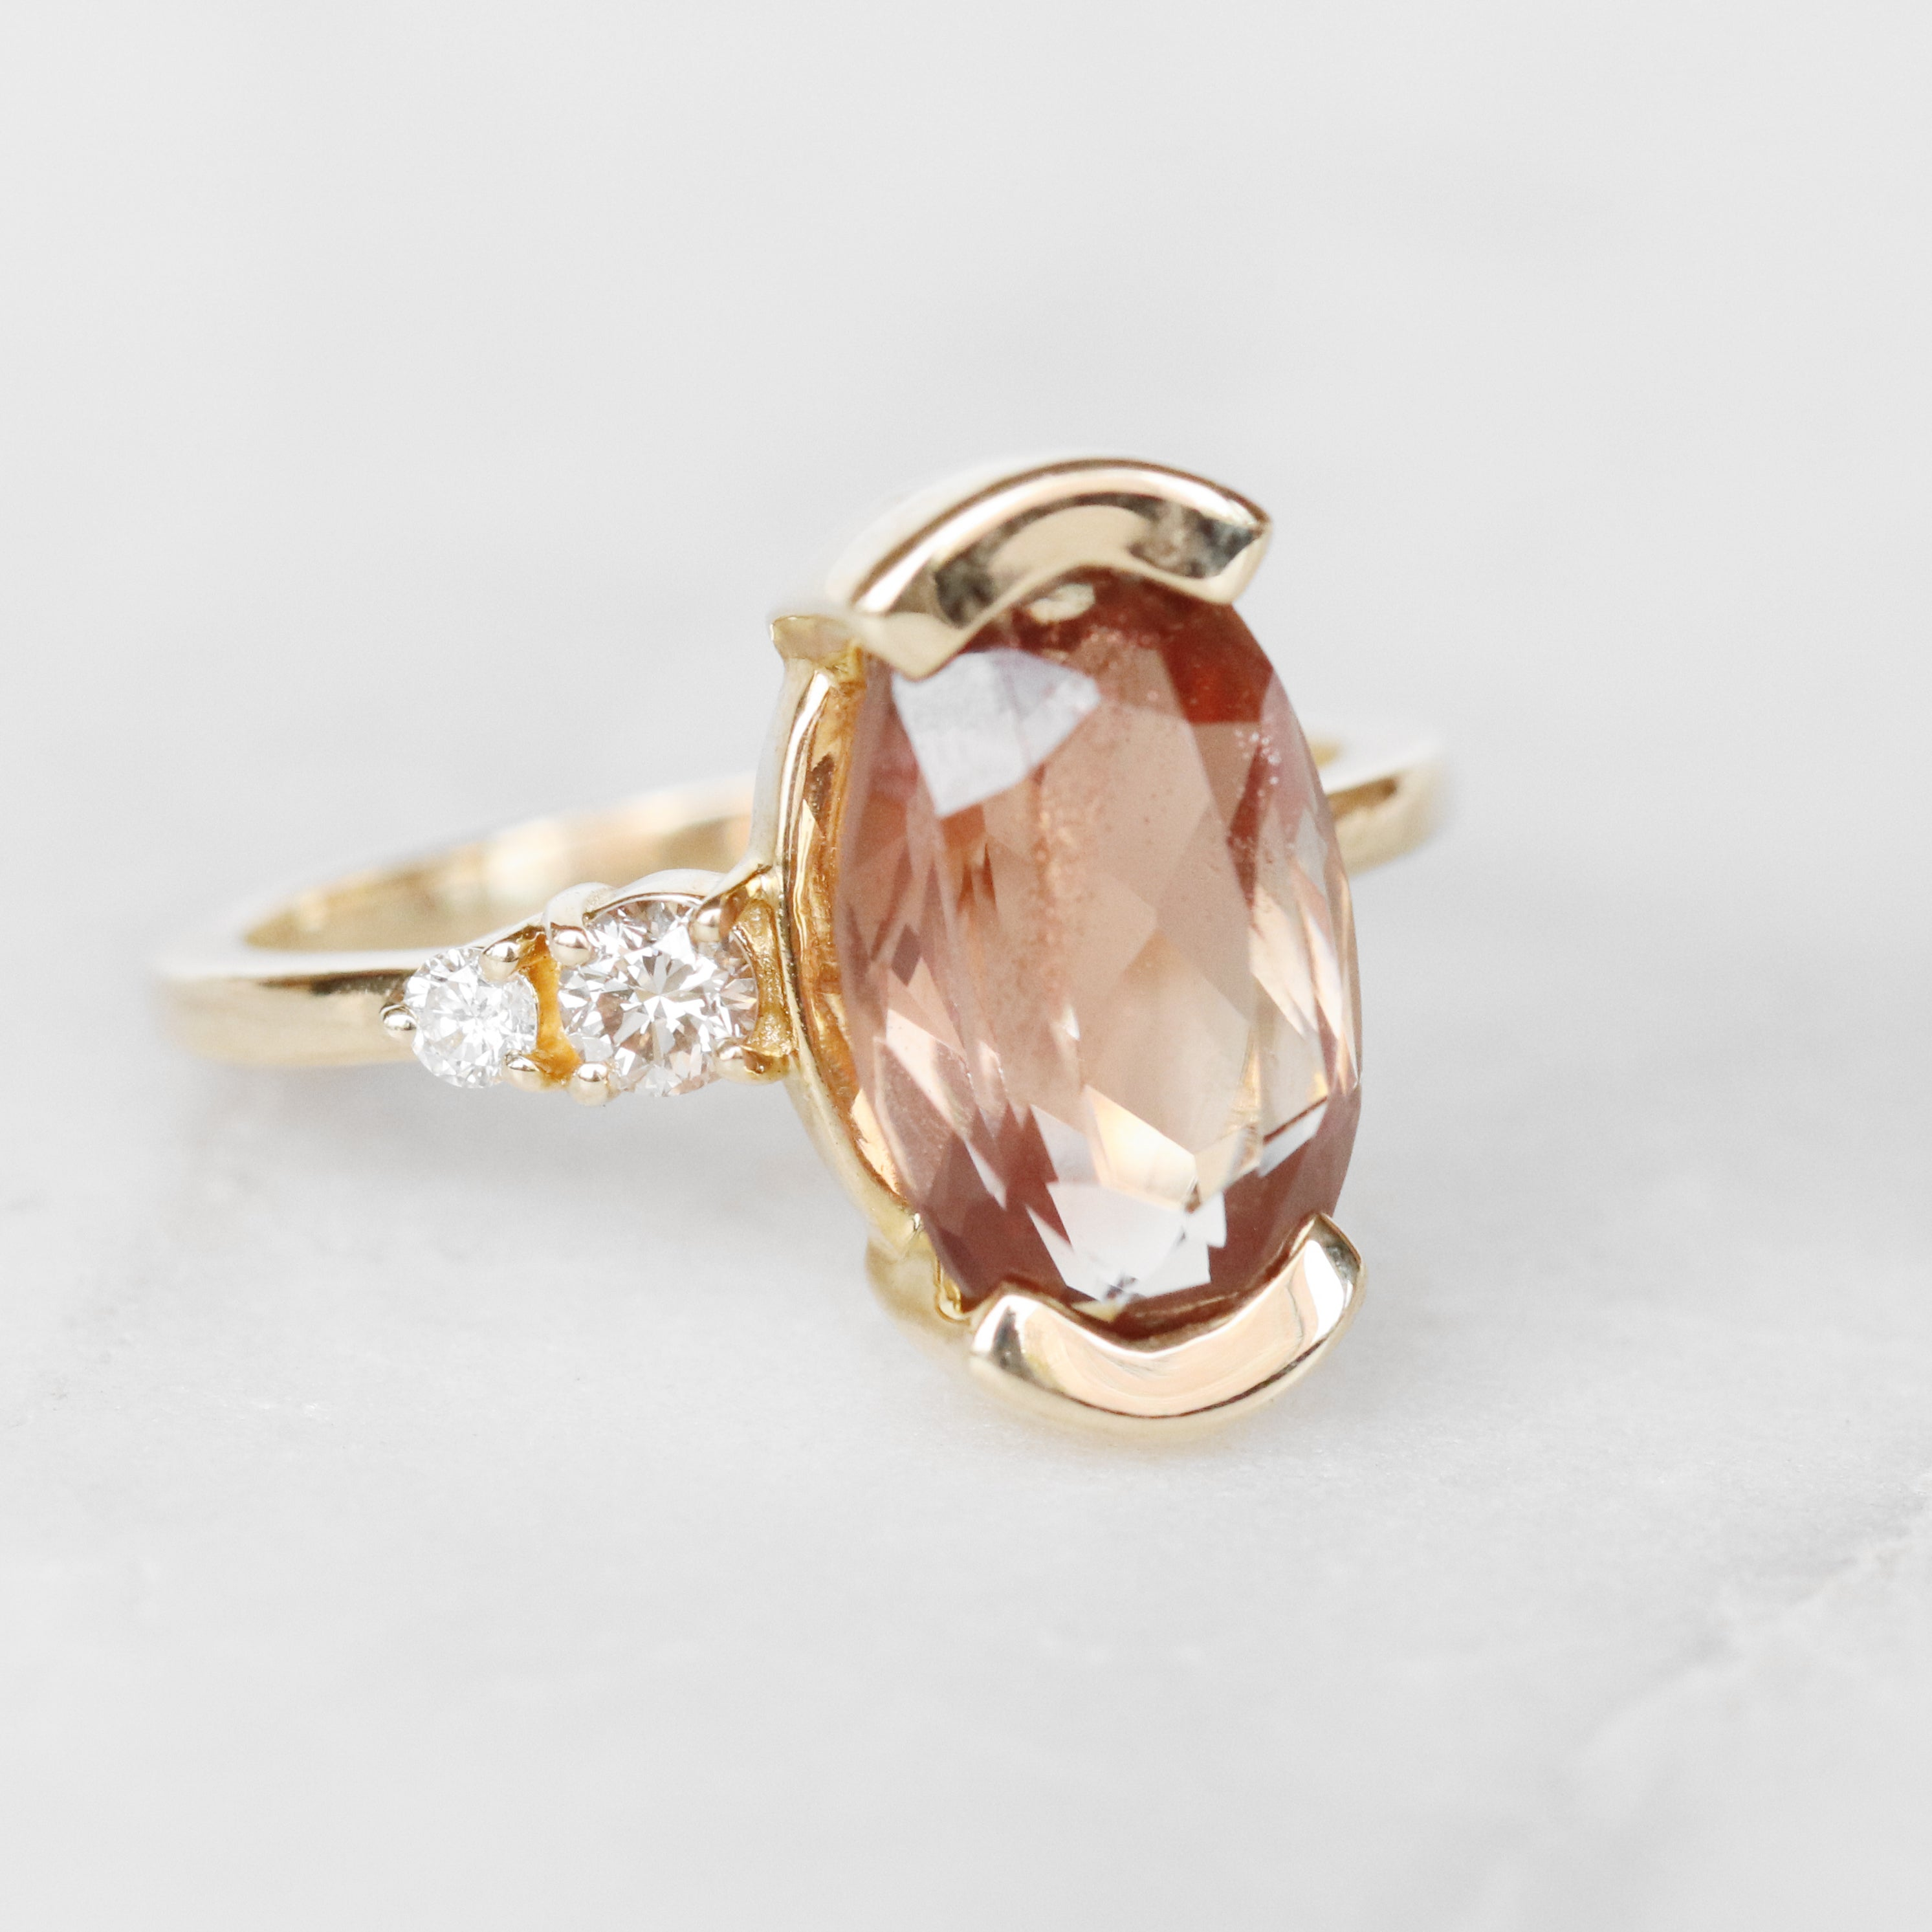 Jesse Ring with 3.34ct Sunstone and Diamonds in 10k Yellow Gold - Ready to Size and Ship - Salt & Pepper Celestial Diamond Engagement Rings and Wedding Bands  by Midwinter Co.